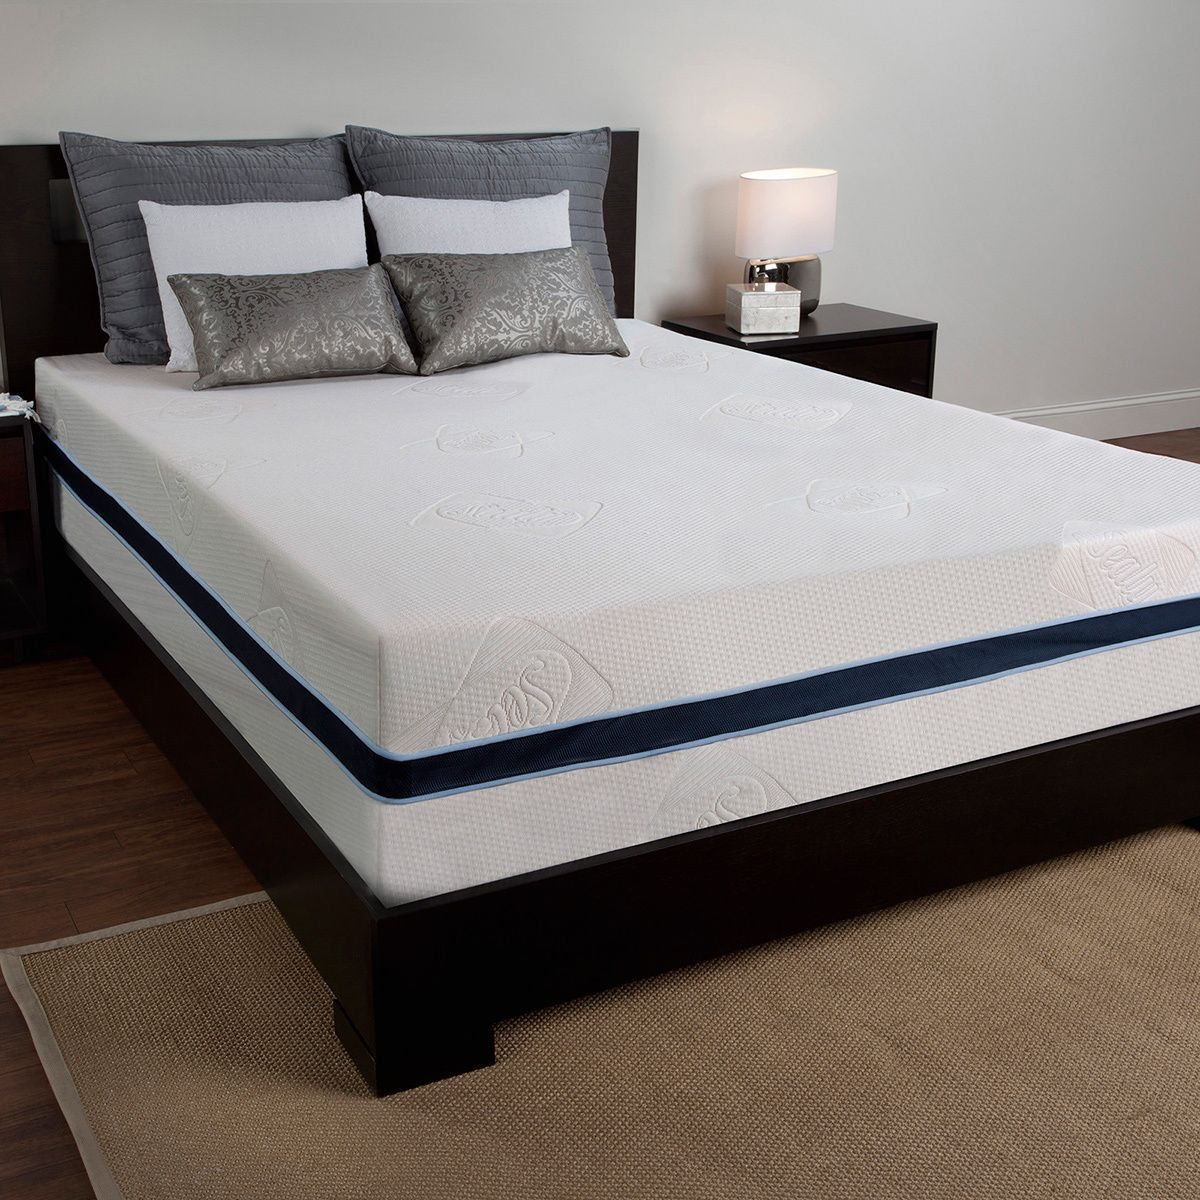 Sealy 12-inch California King-size Memory Foam Mattress | Products ...